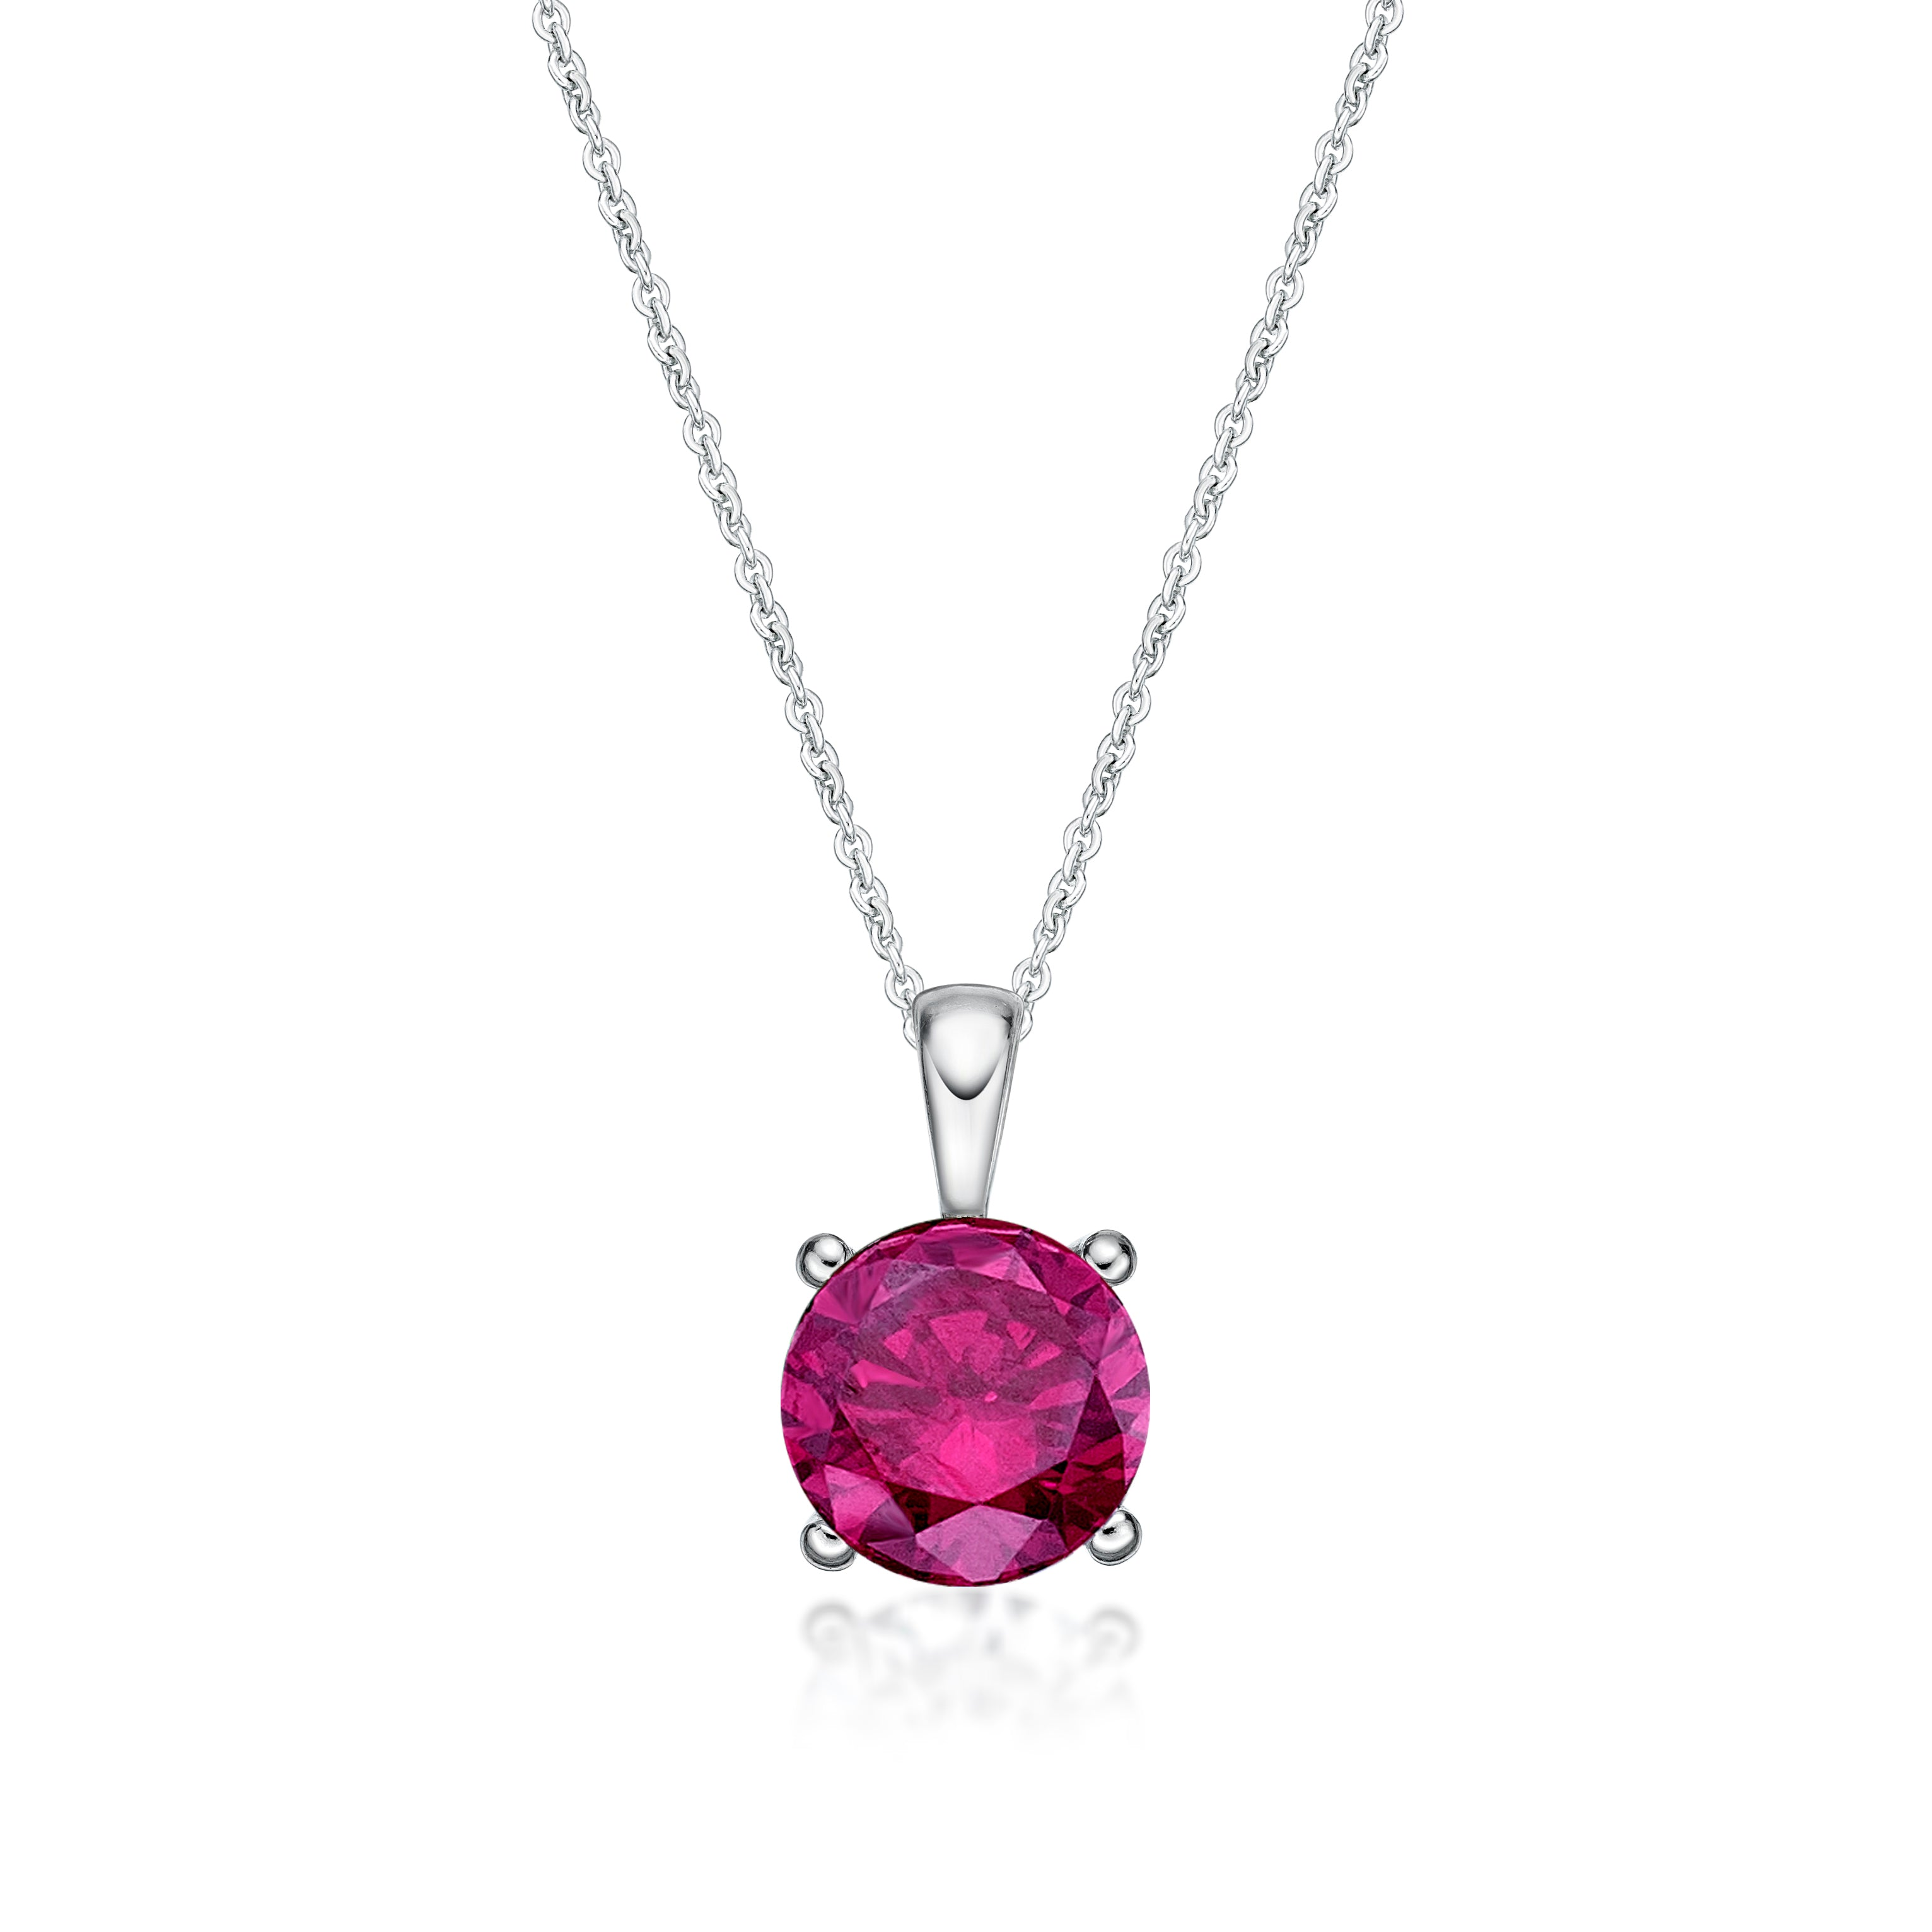 Sterling Silver 4 Claw CZ Birthstone Pendant - July